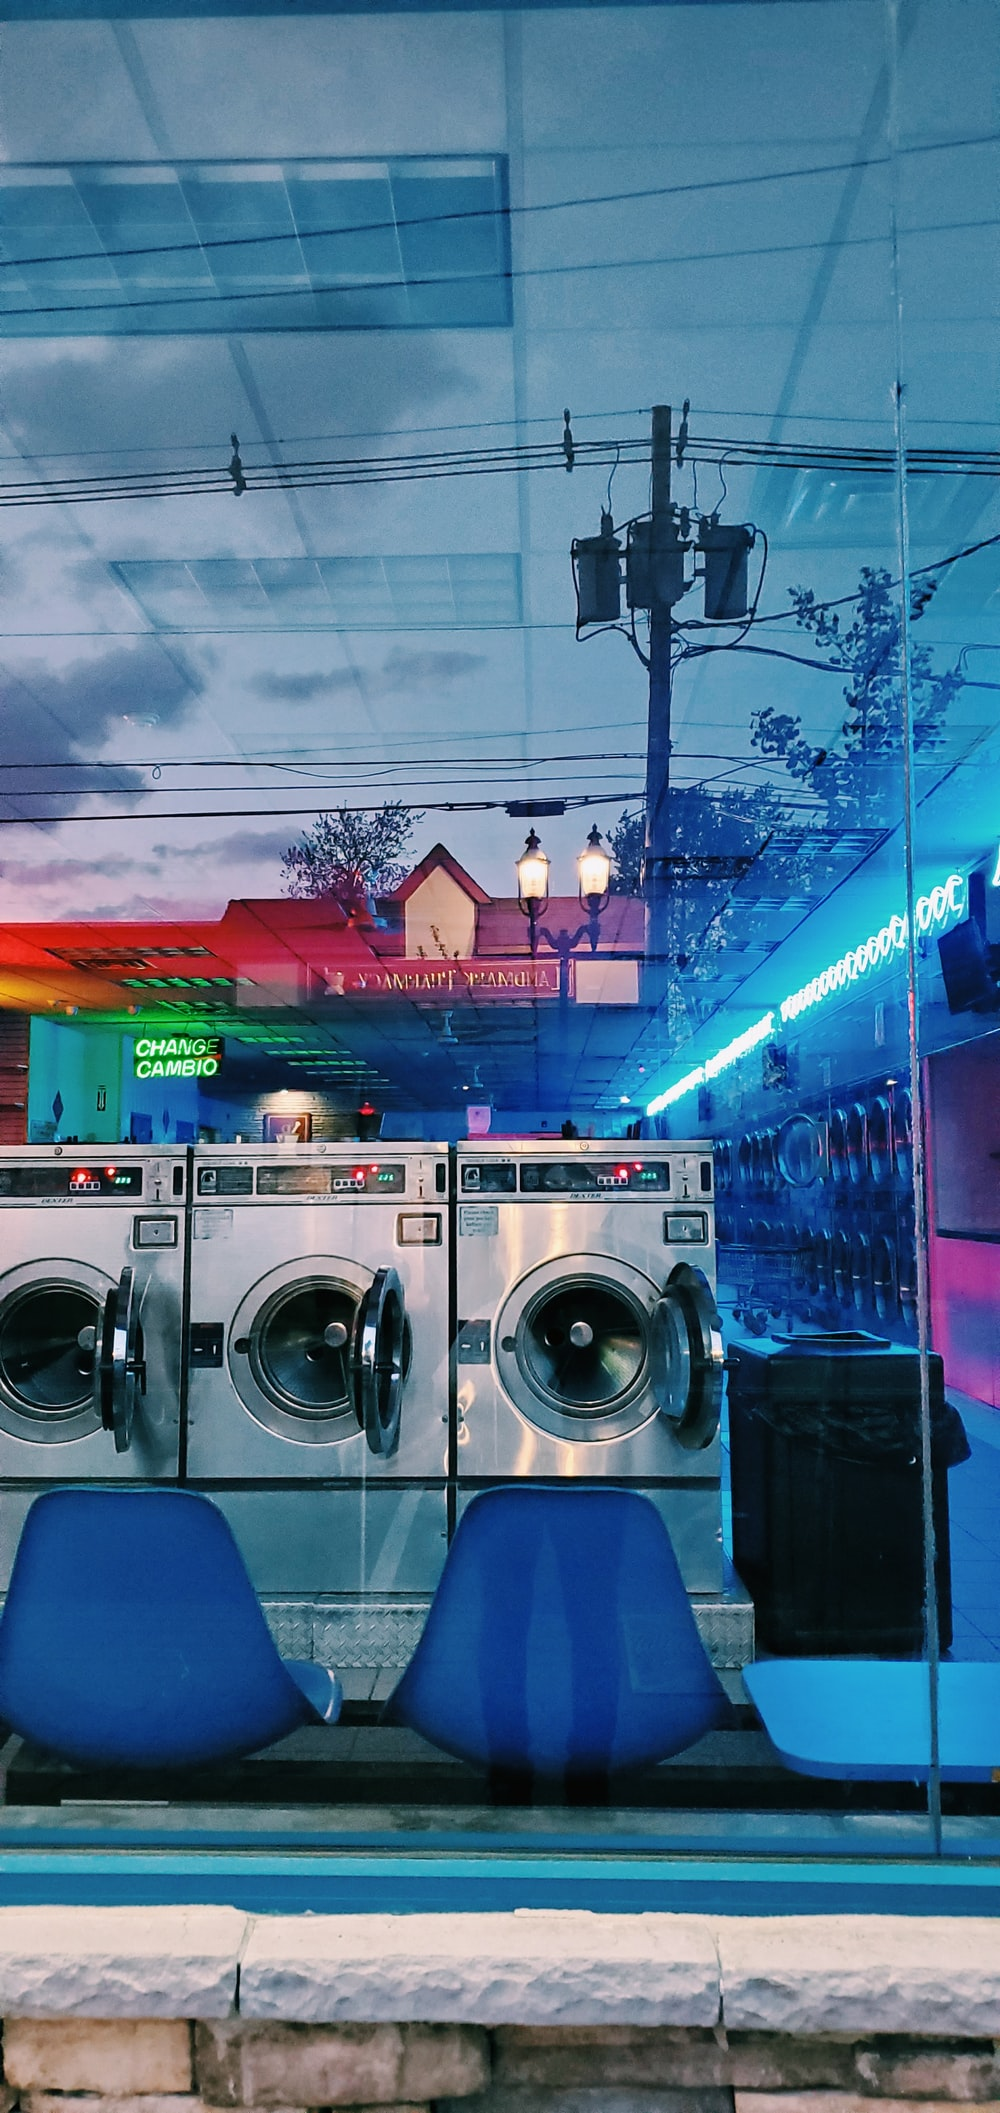 front load washing machines near building during night time